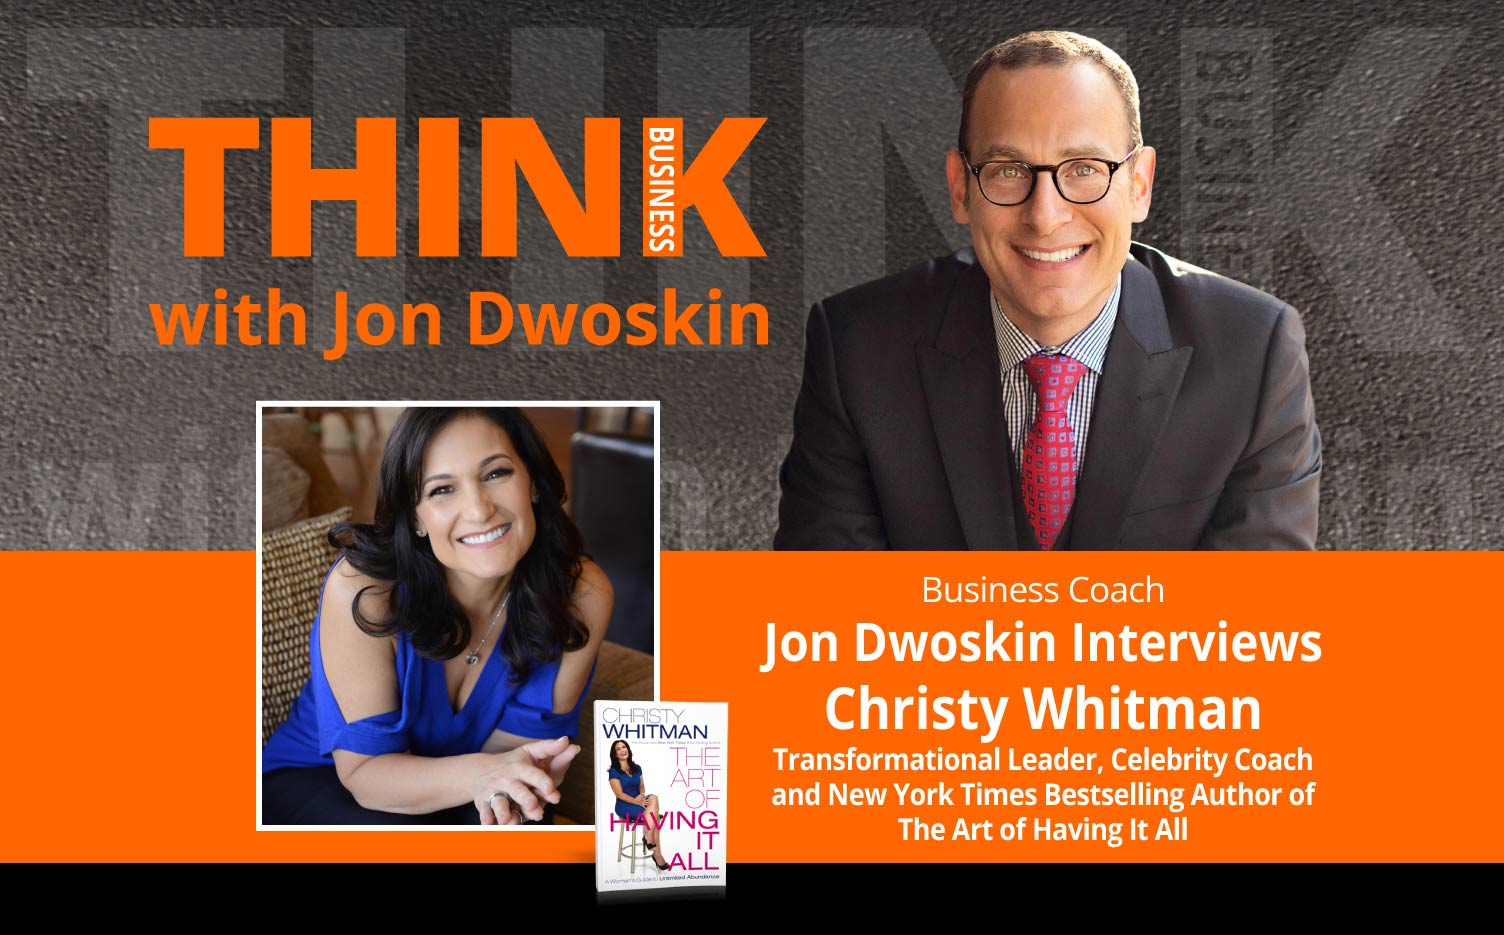 THINK Business Podcast: Jon Dwoskin Interviews Christy Whitman, Transformational Leader, Celebrity Coach and New York Times Bestselling Author of The Art of Having It All